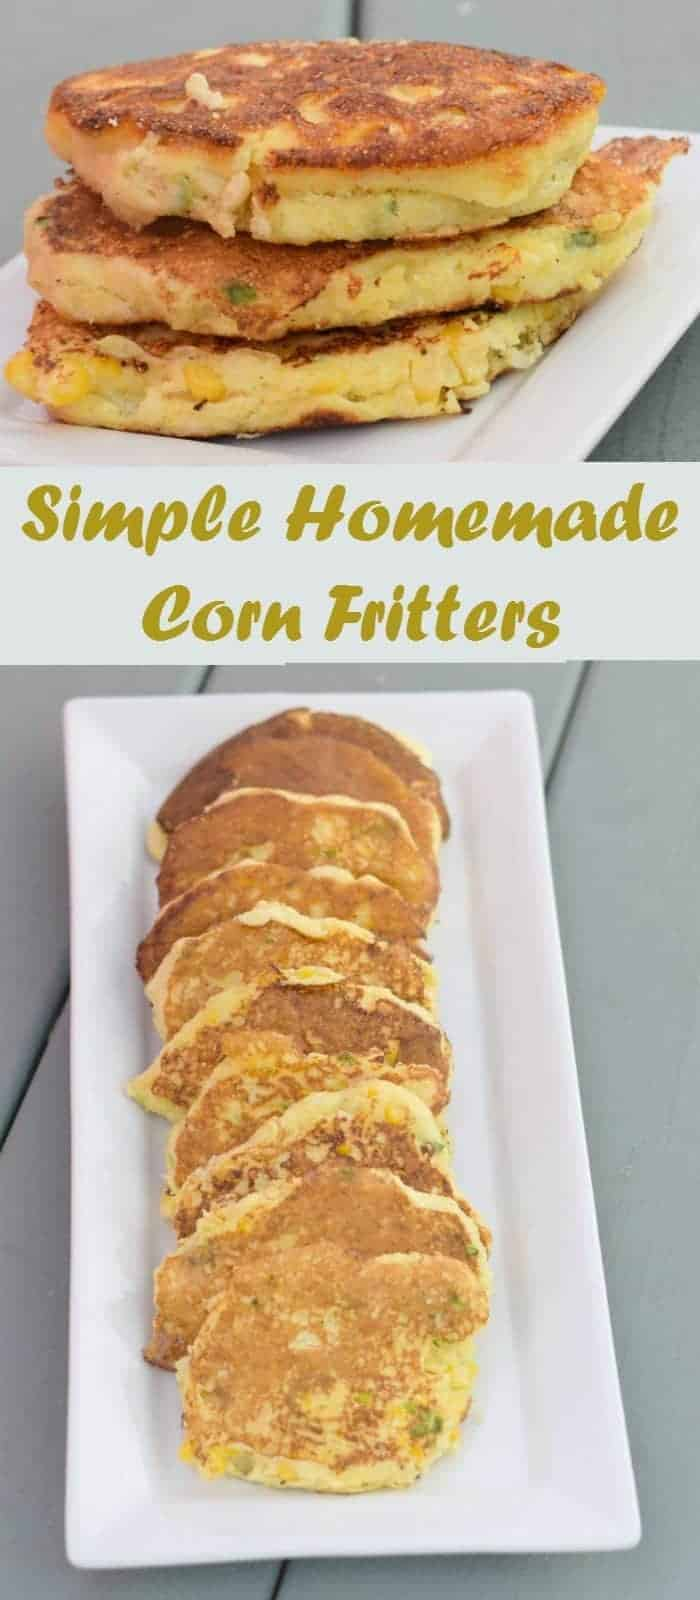 Simple homemade corn fritters recipe. A delicious gluten free appetizer to enjoy alone or with salsa or guacamole. This recipe is ready in under 20 minutes for a healthy spring dinner.